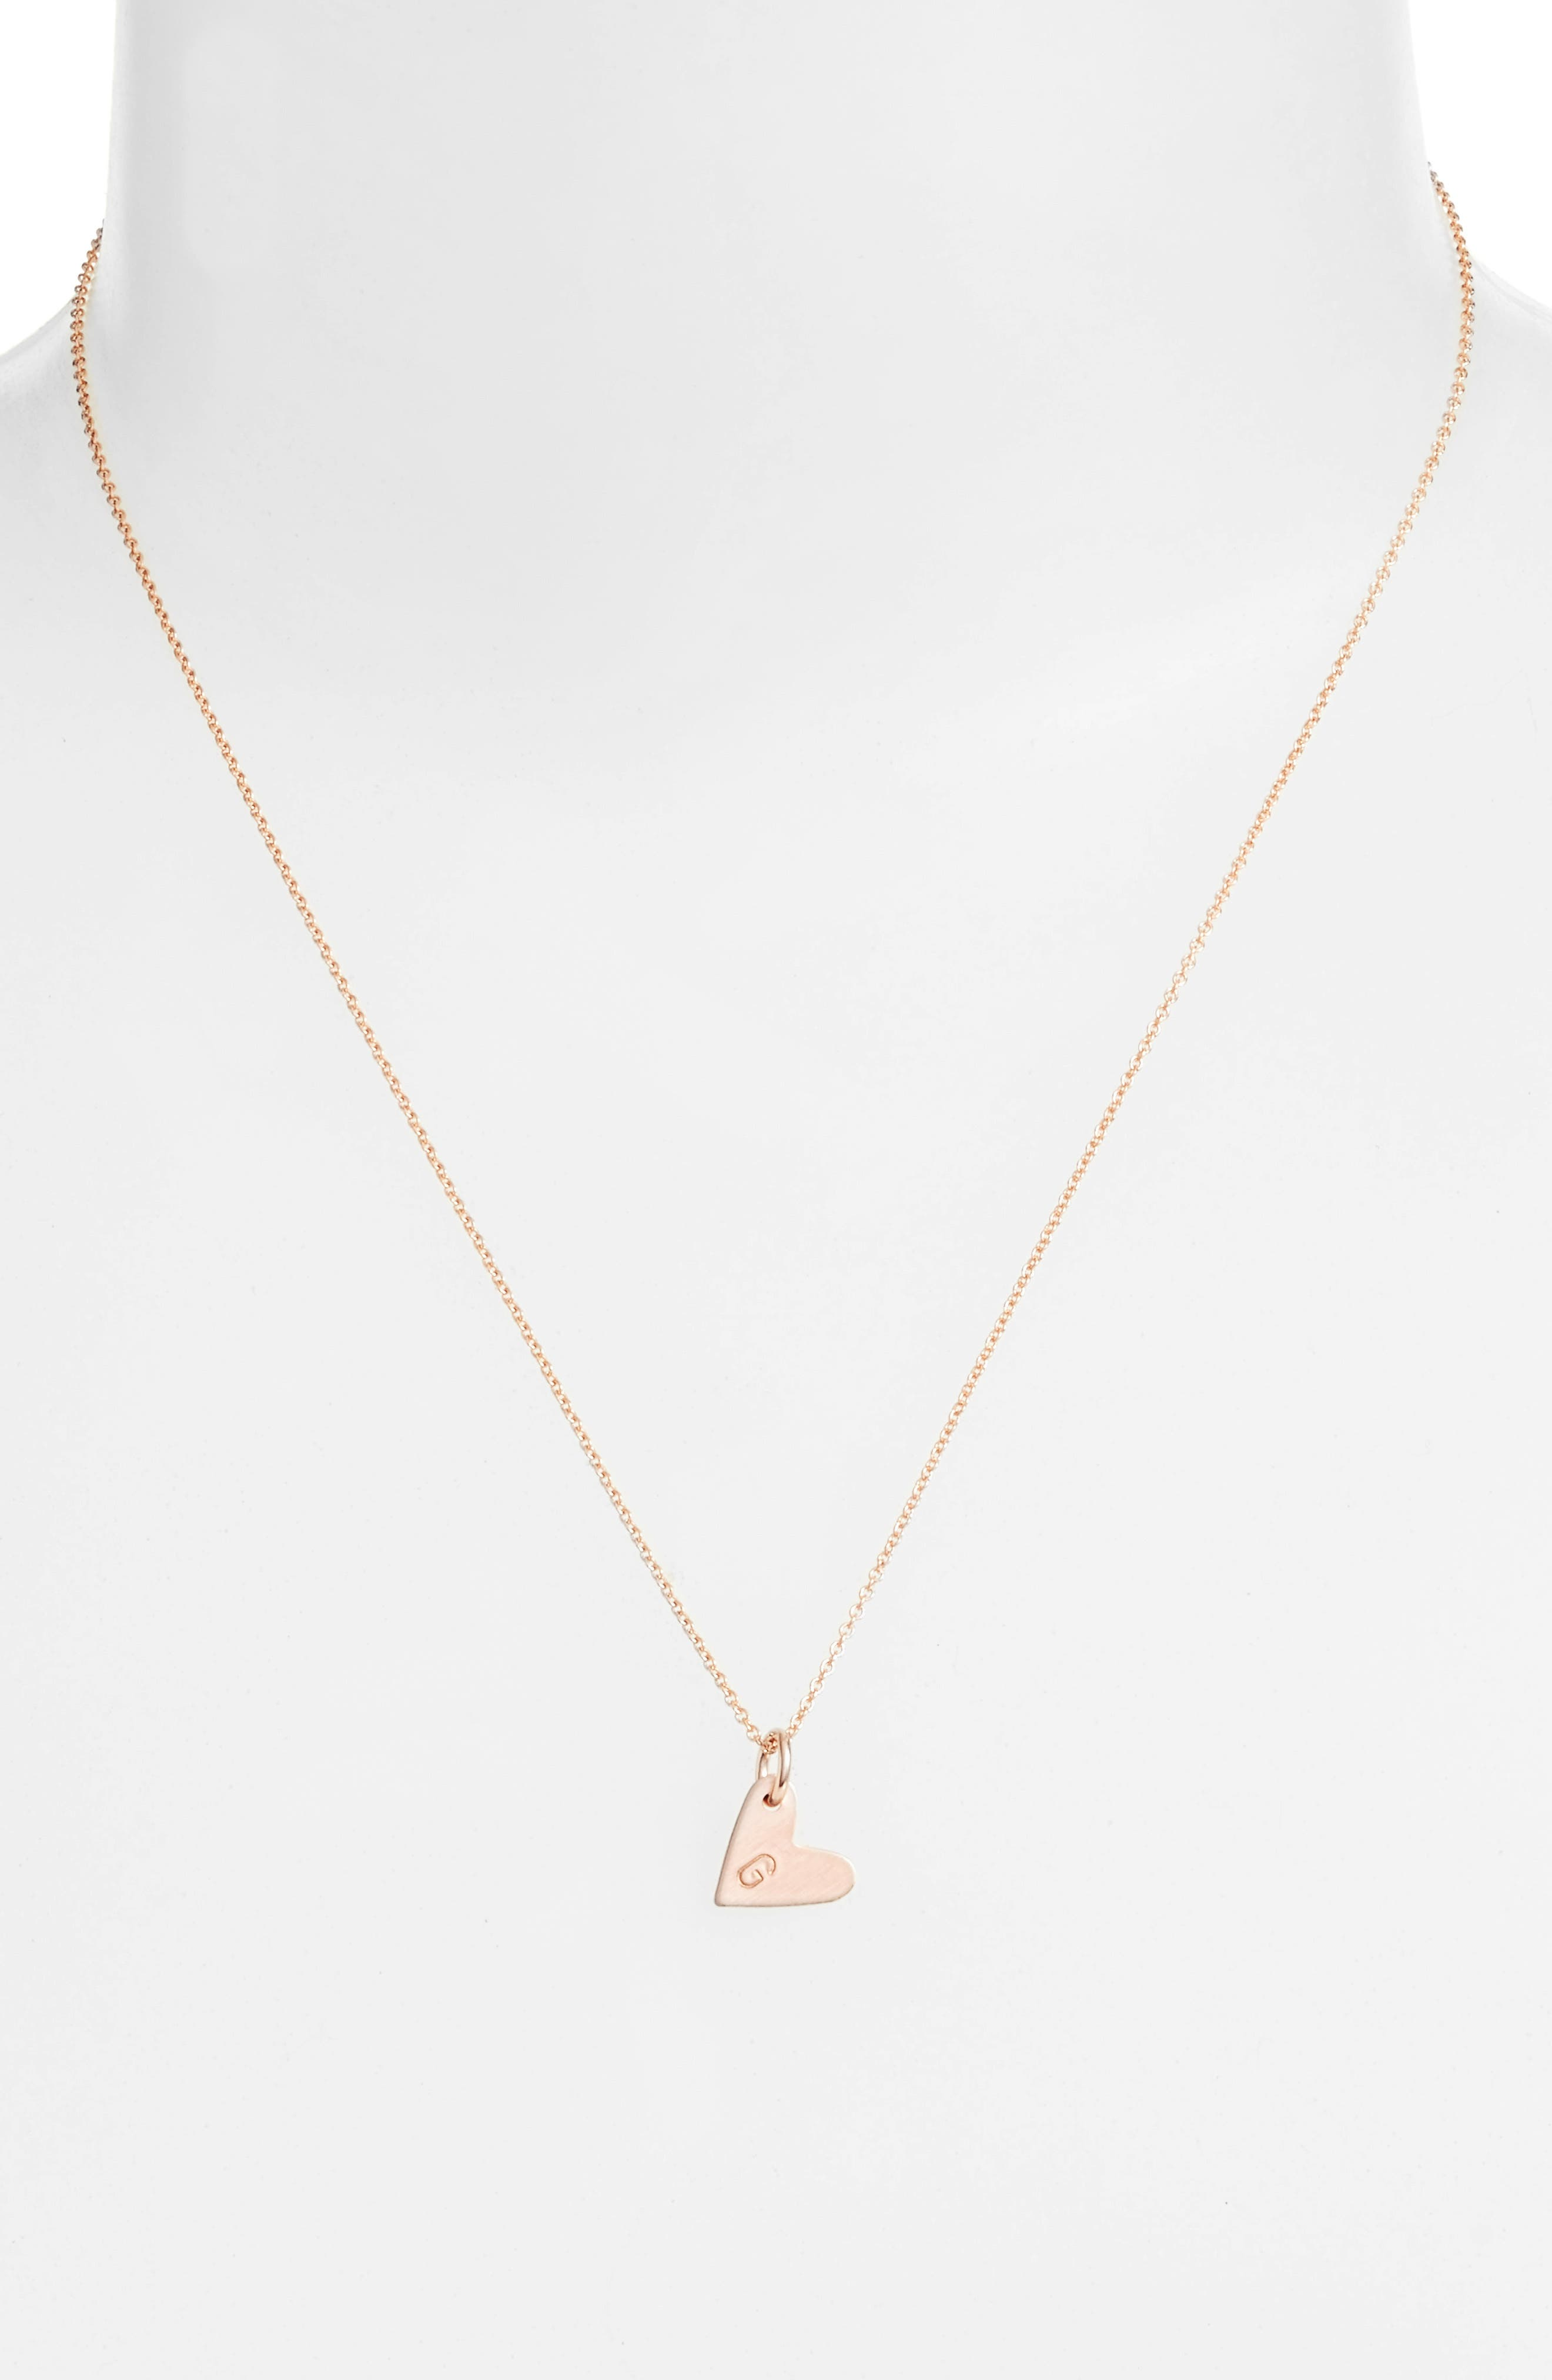 Initial Heart Pendant Necklace,                             Alternate thumbnail 2, color,                             Rose Gold/ G